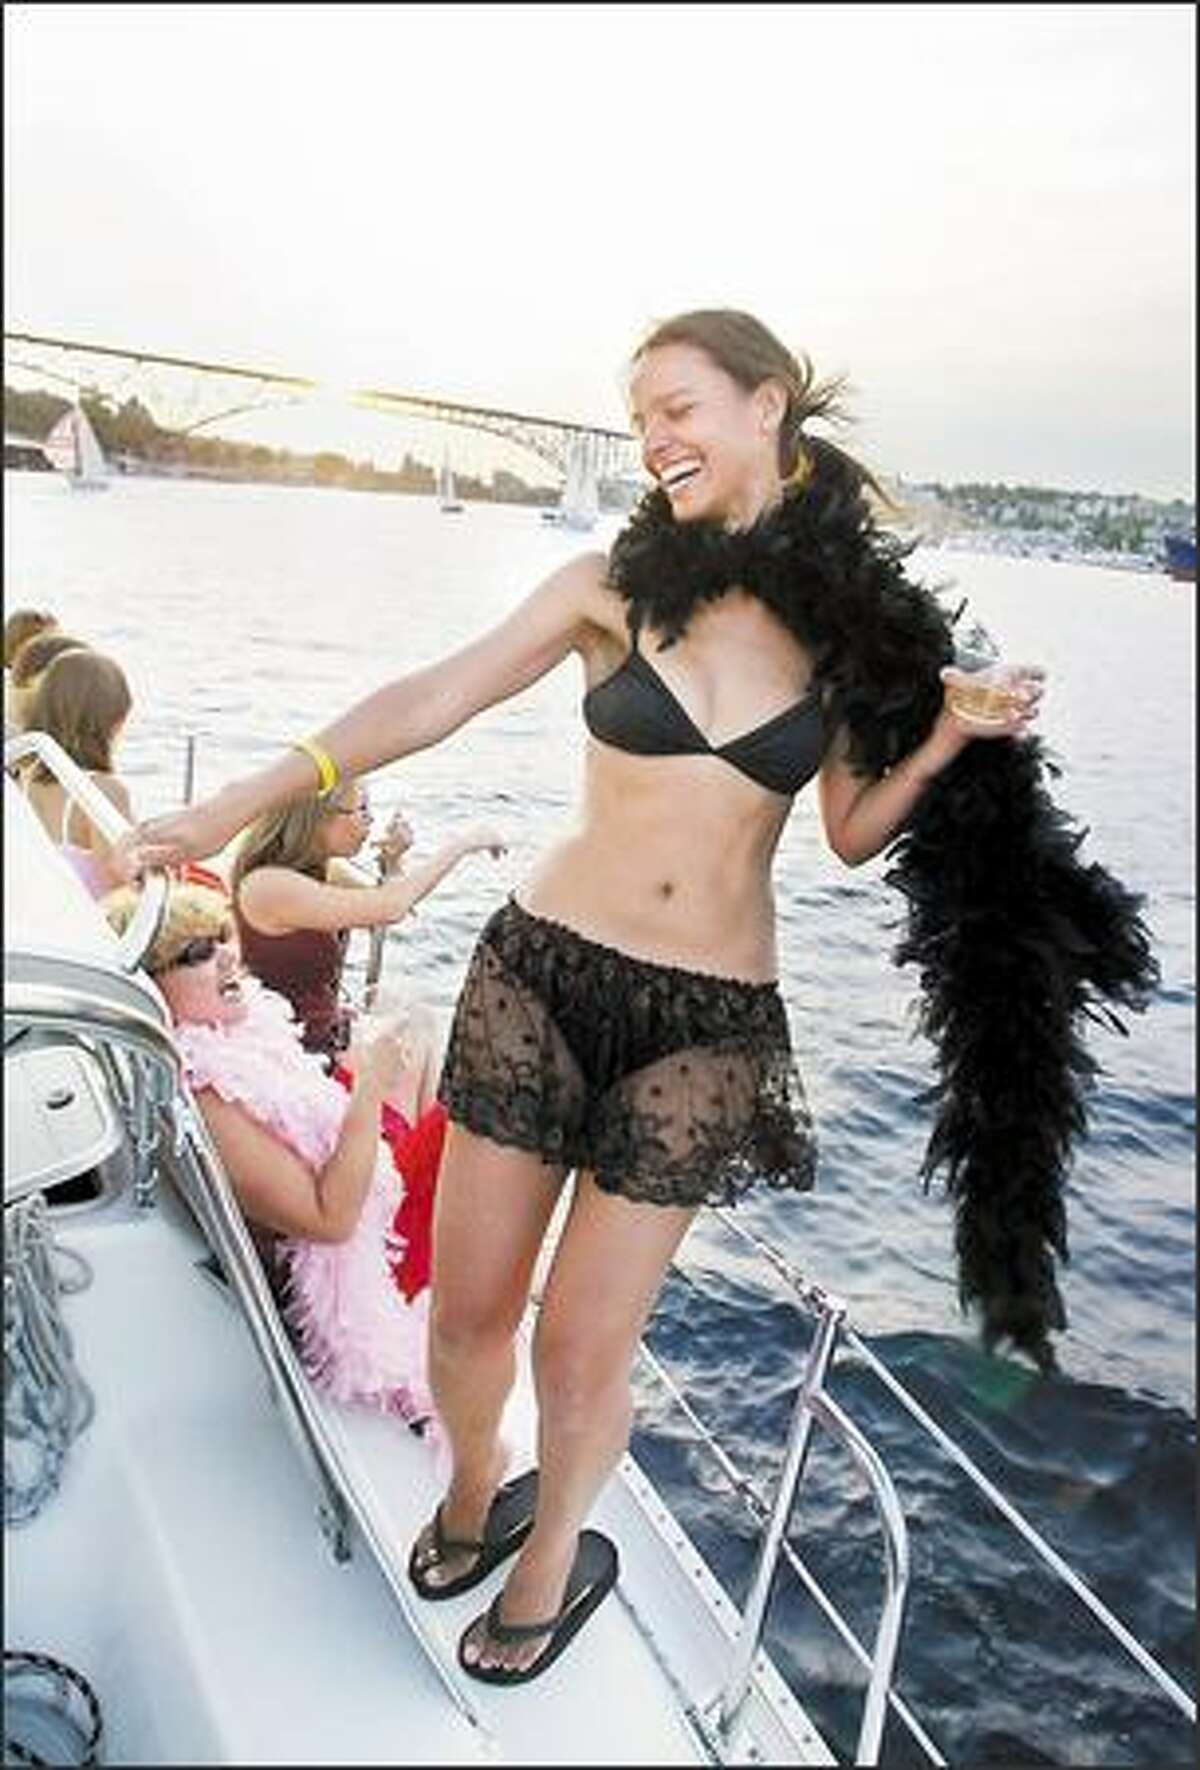 Wanda Layton of Seattle, standing right, and Colleen Galbraith, center, break out their boas to party on the boat Mata Hari in the Duck Dodge race.